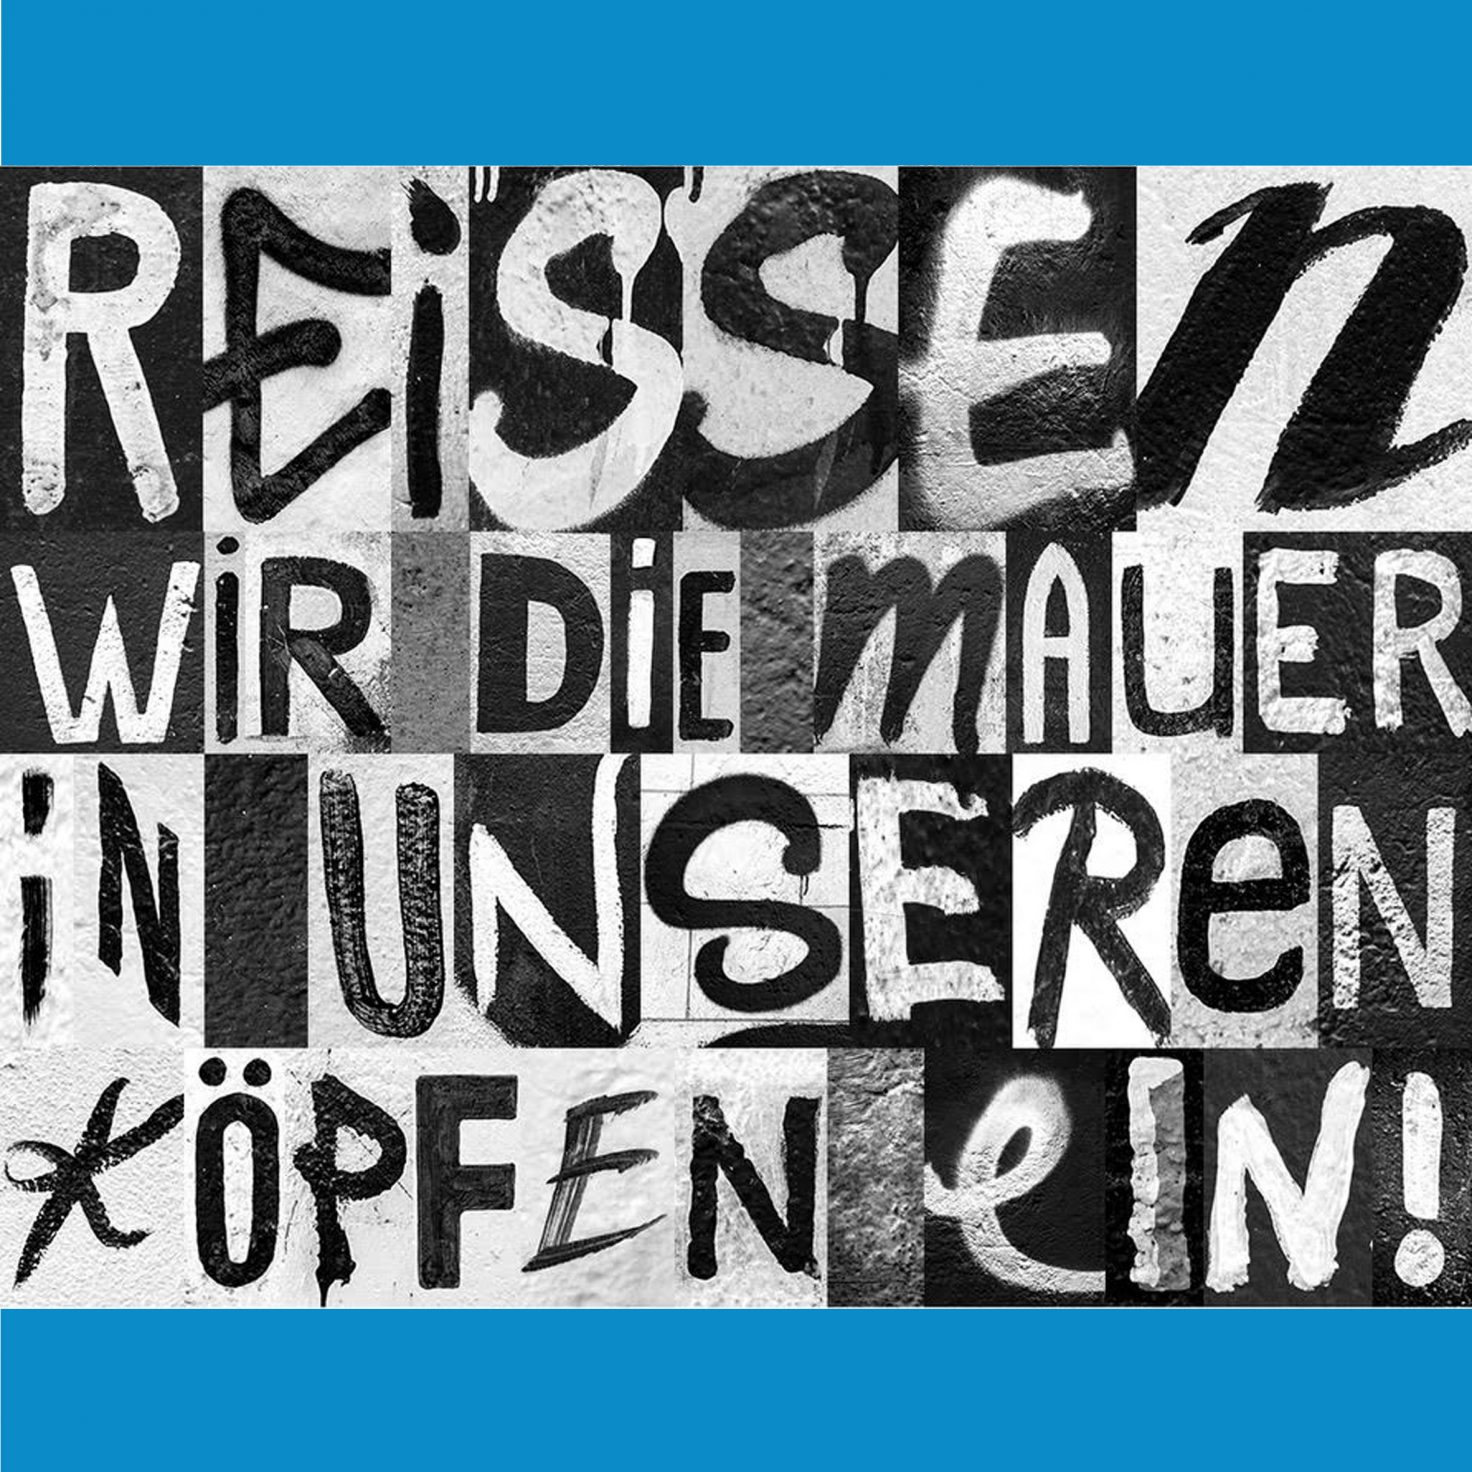 Berlin Wall typeface dezeen blue